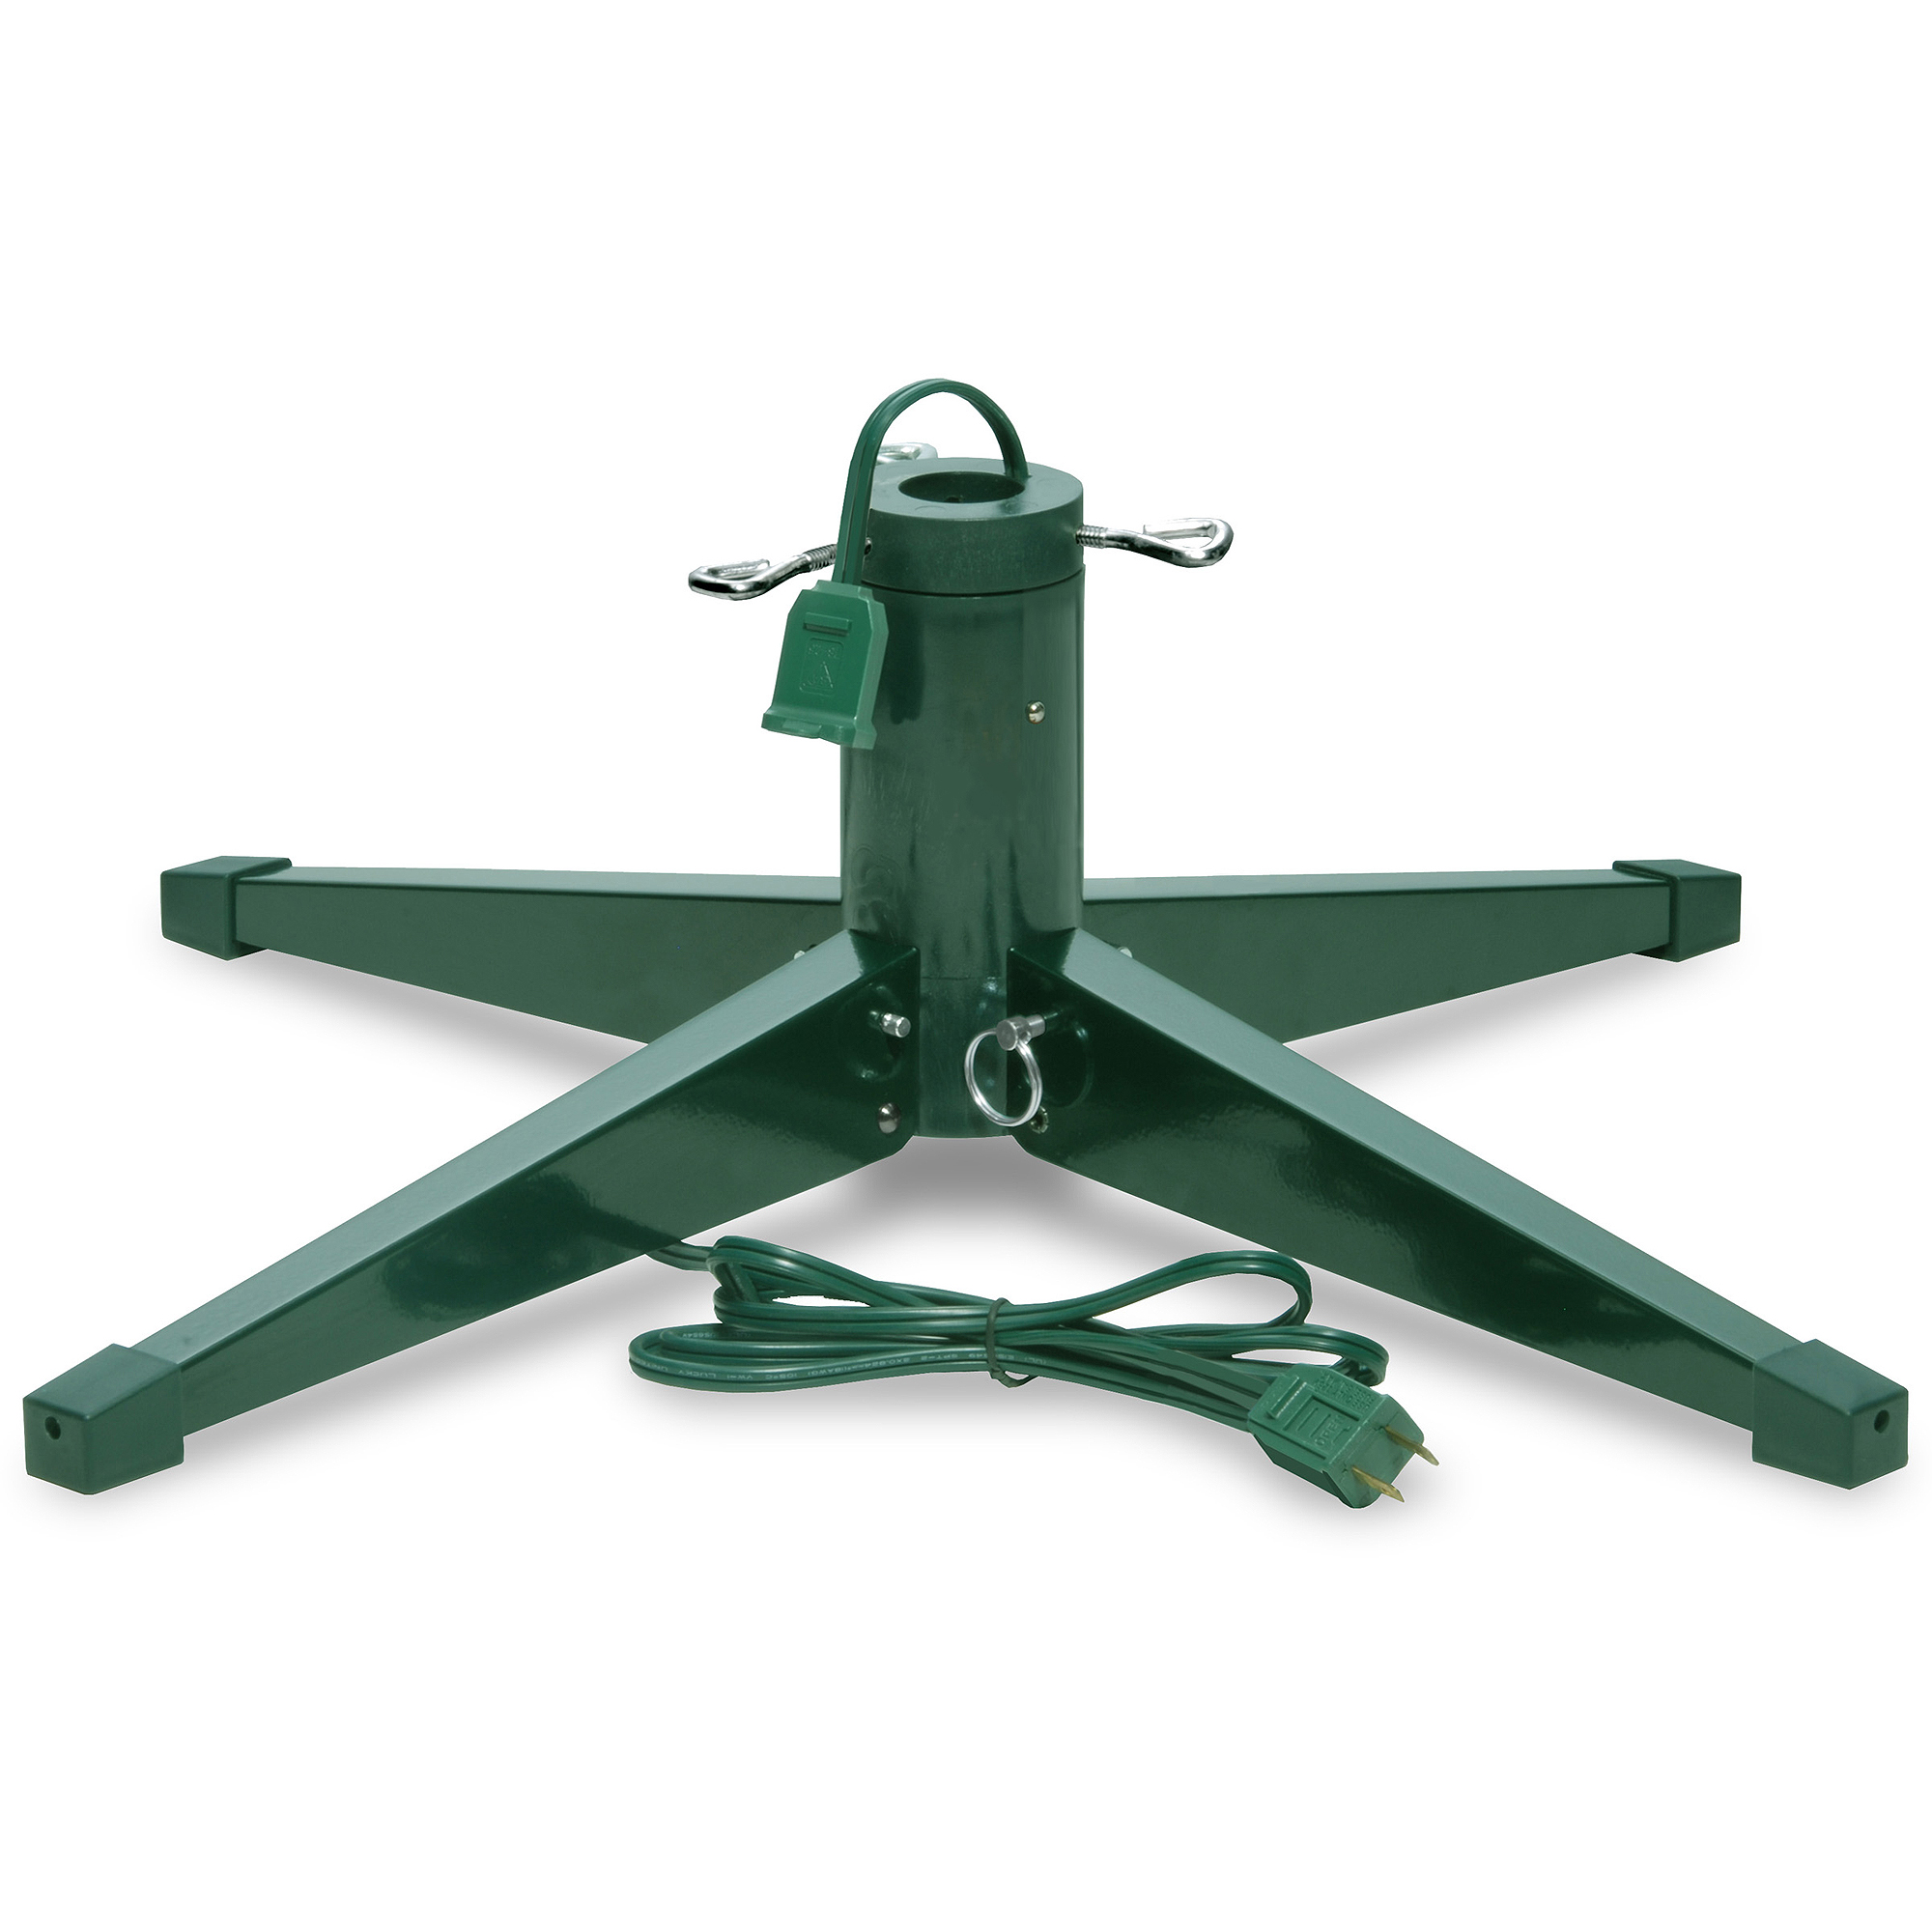 National Tree Revolving Stand 100 Pound Load Weight Walmart Com - Revolving Christmas Tree Stand